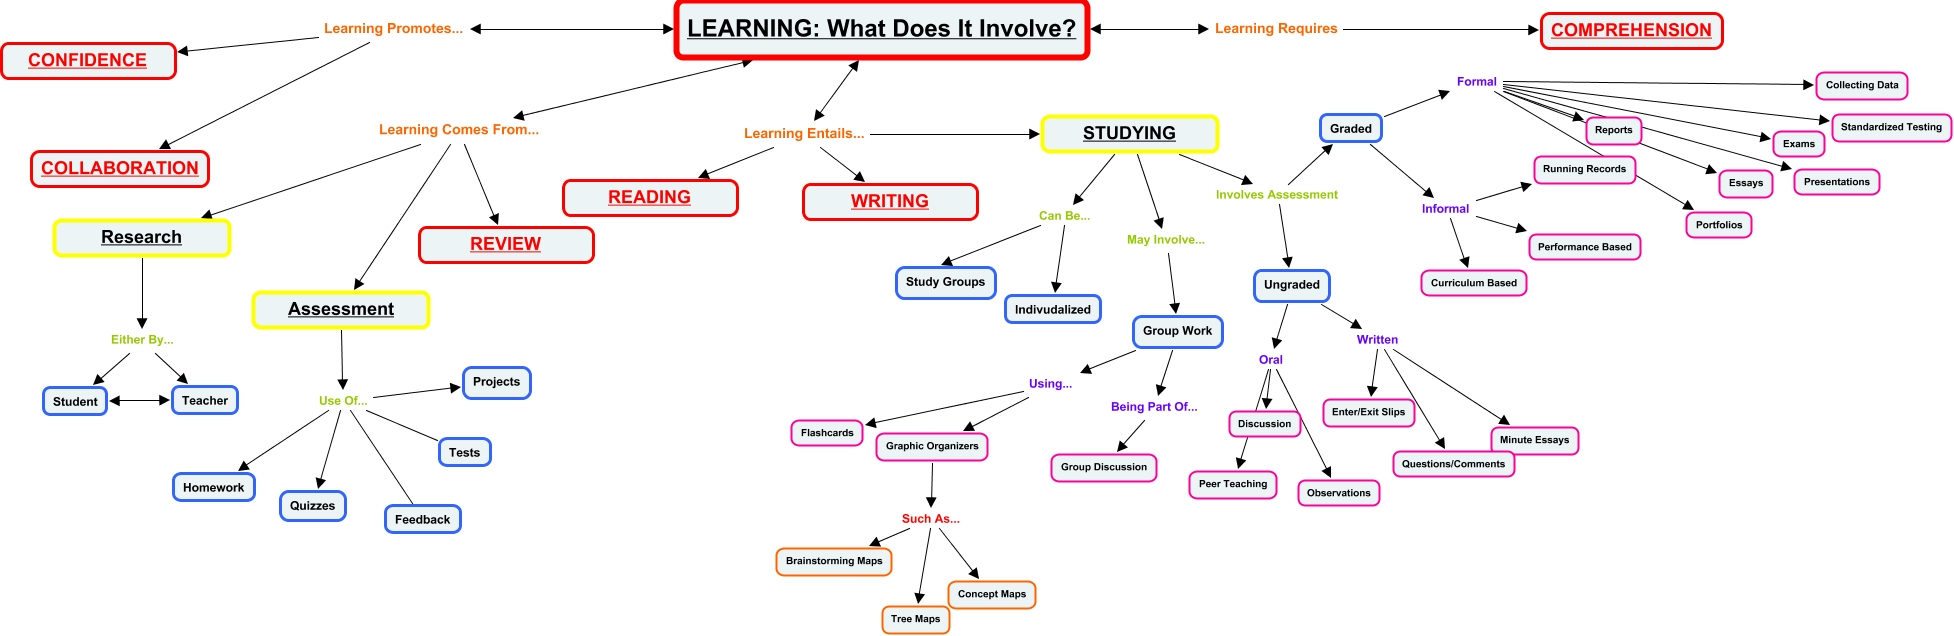 learning concept map group work graphic organizers such as concept maps learning what does it involve learning comes from assessment